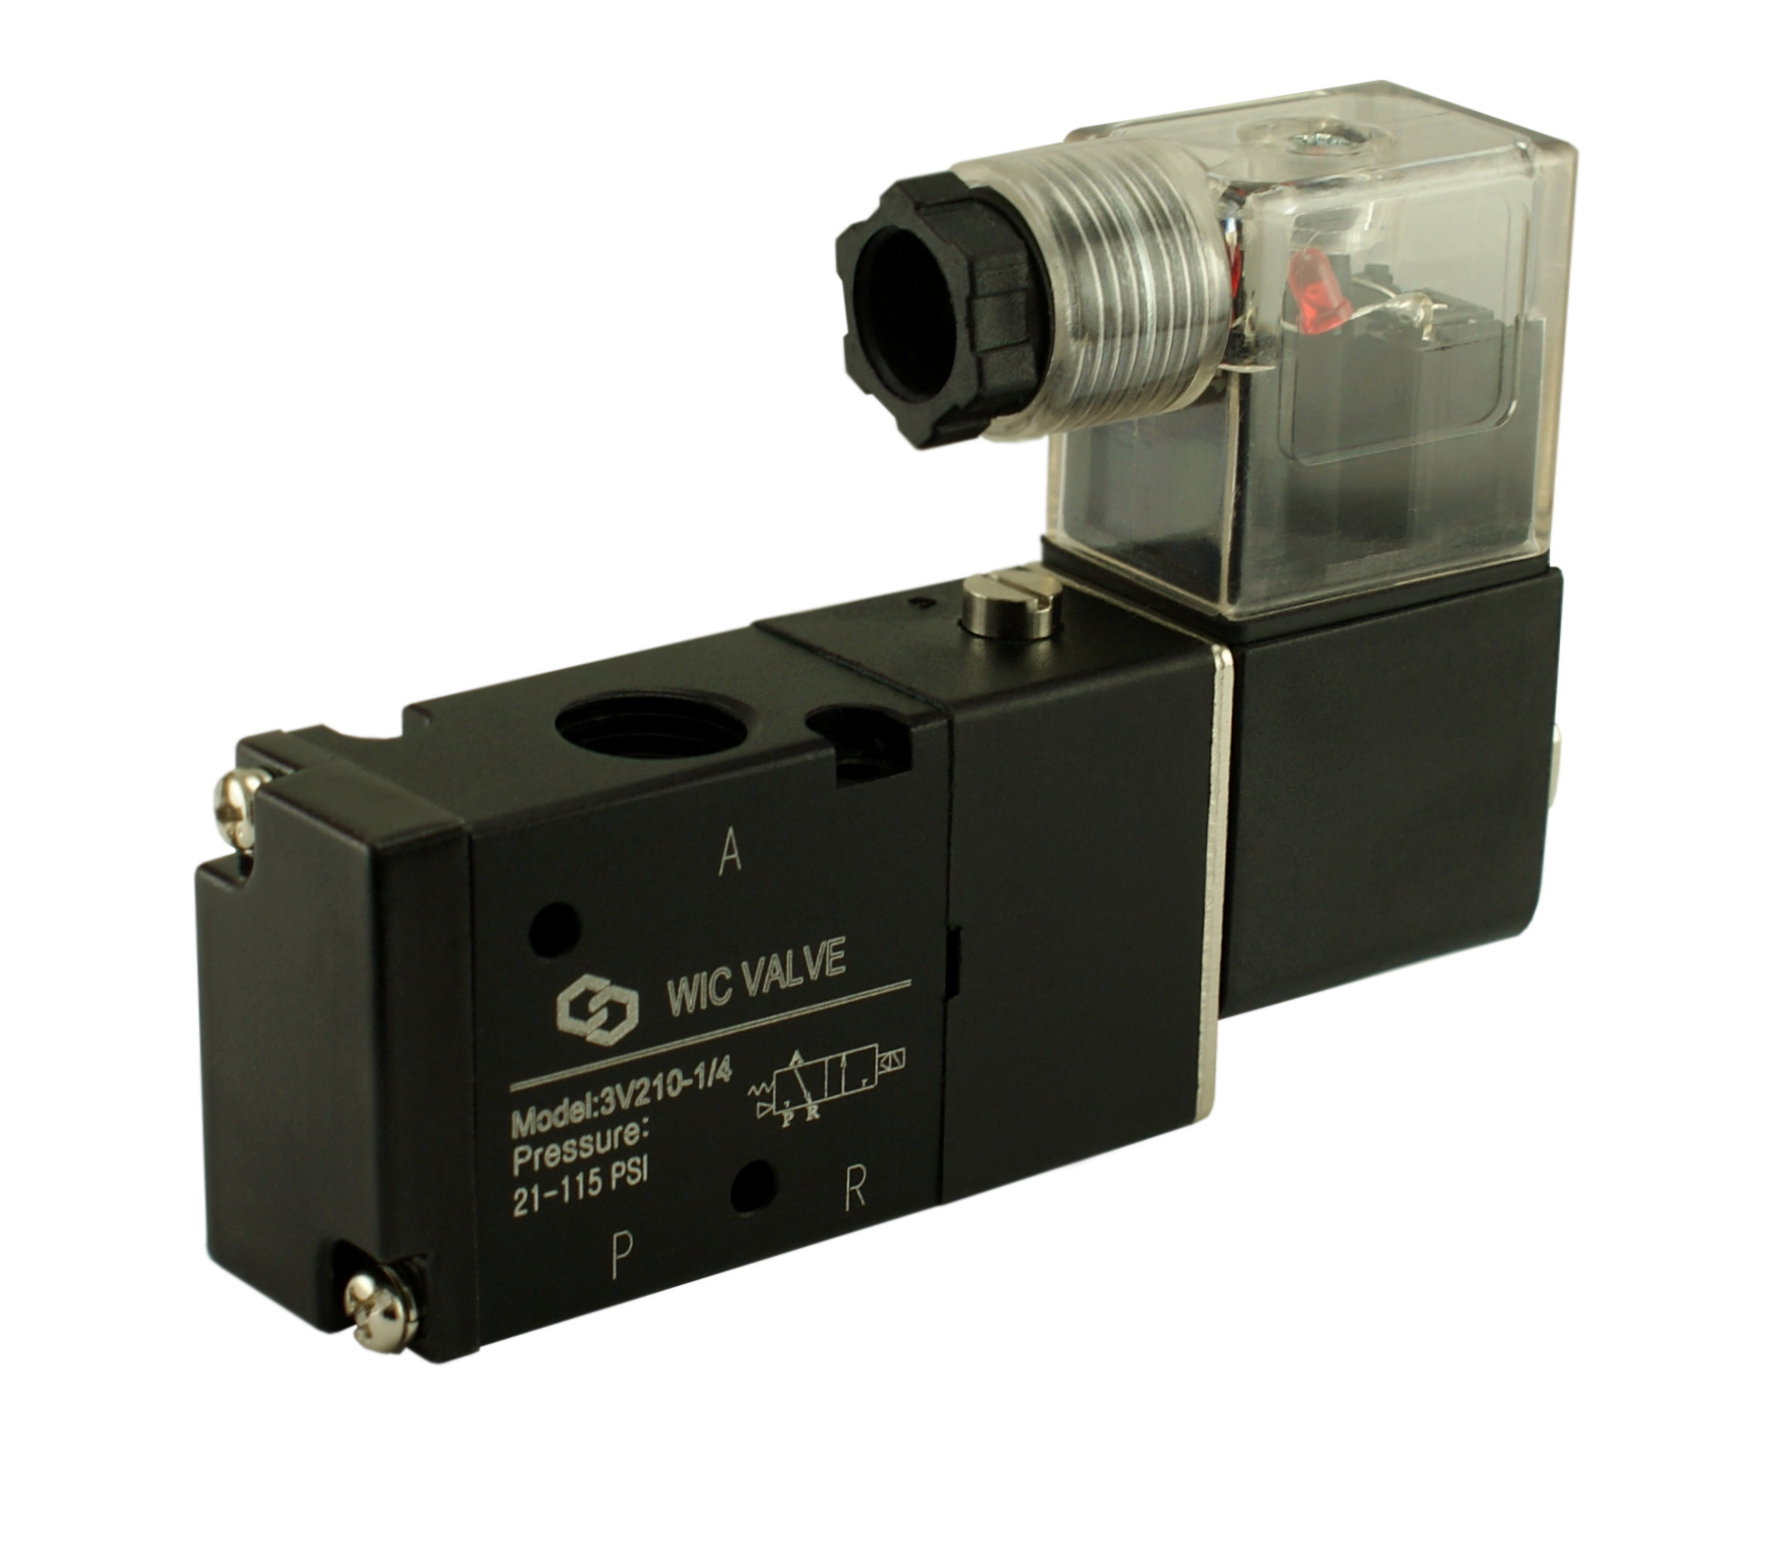 WIC Valve 3V210 Series 3 Way Directional Control Air Solenoid Valve directional control solenoid valve, 3 way air valve, pneumatic valve smc solenoid valve wiring diagram at readyjetset.co